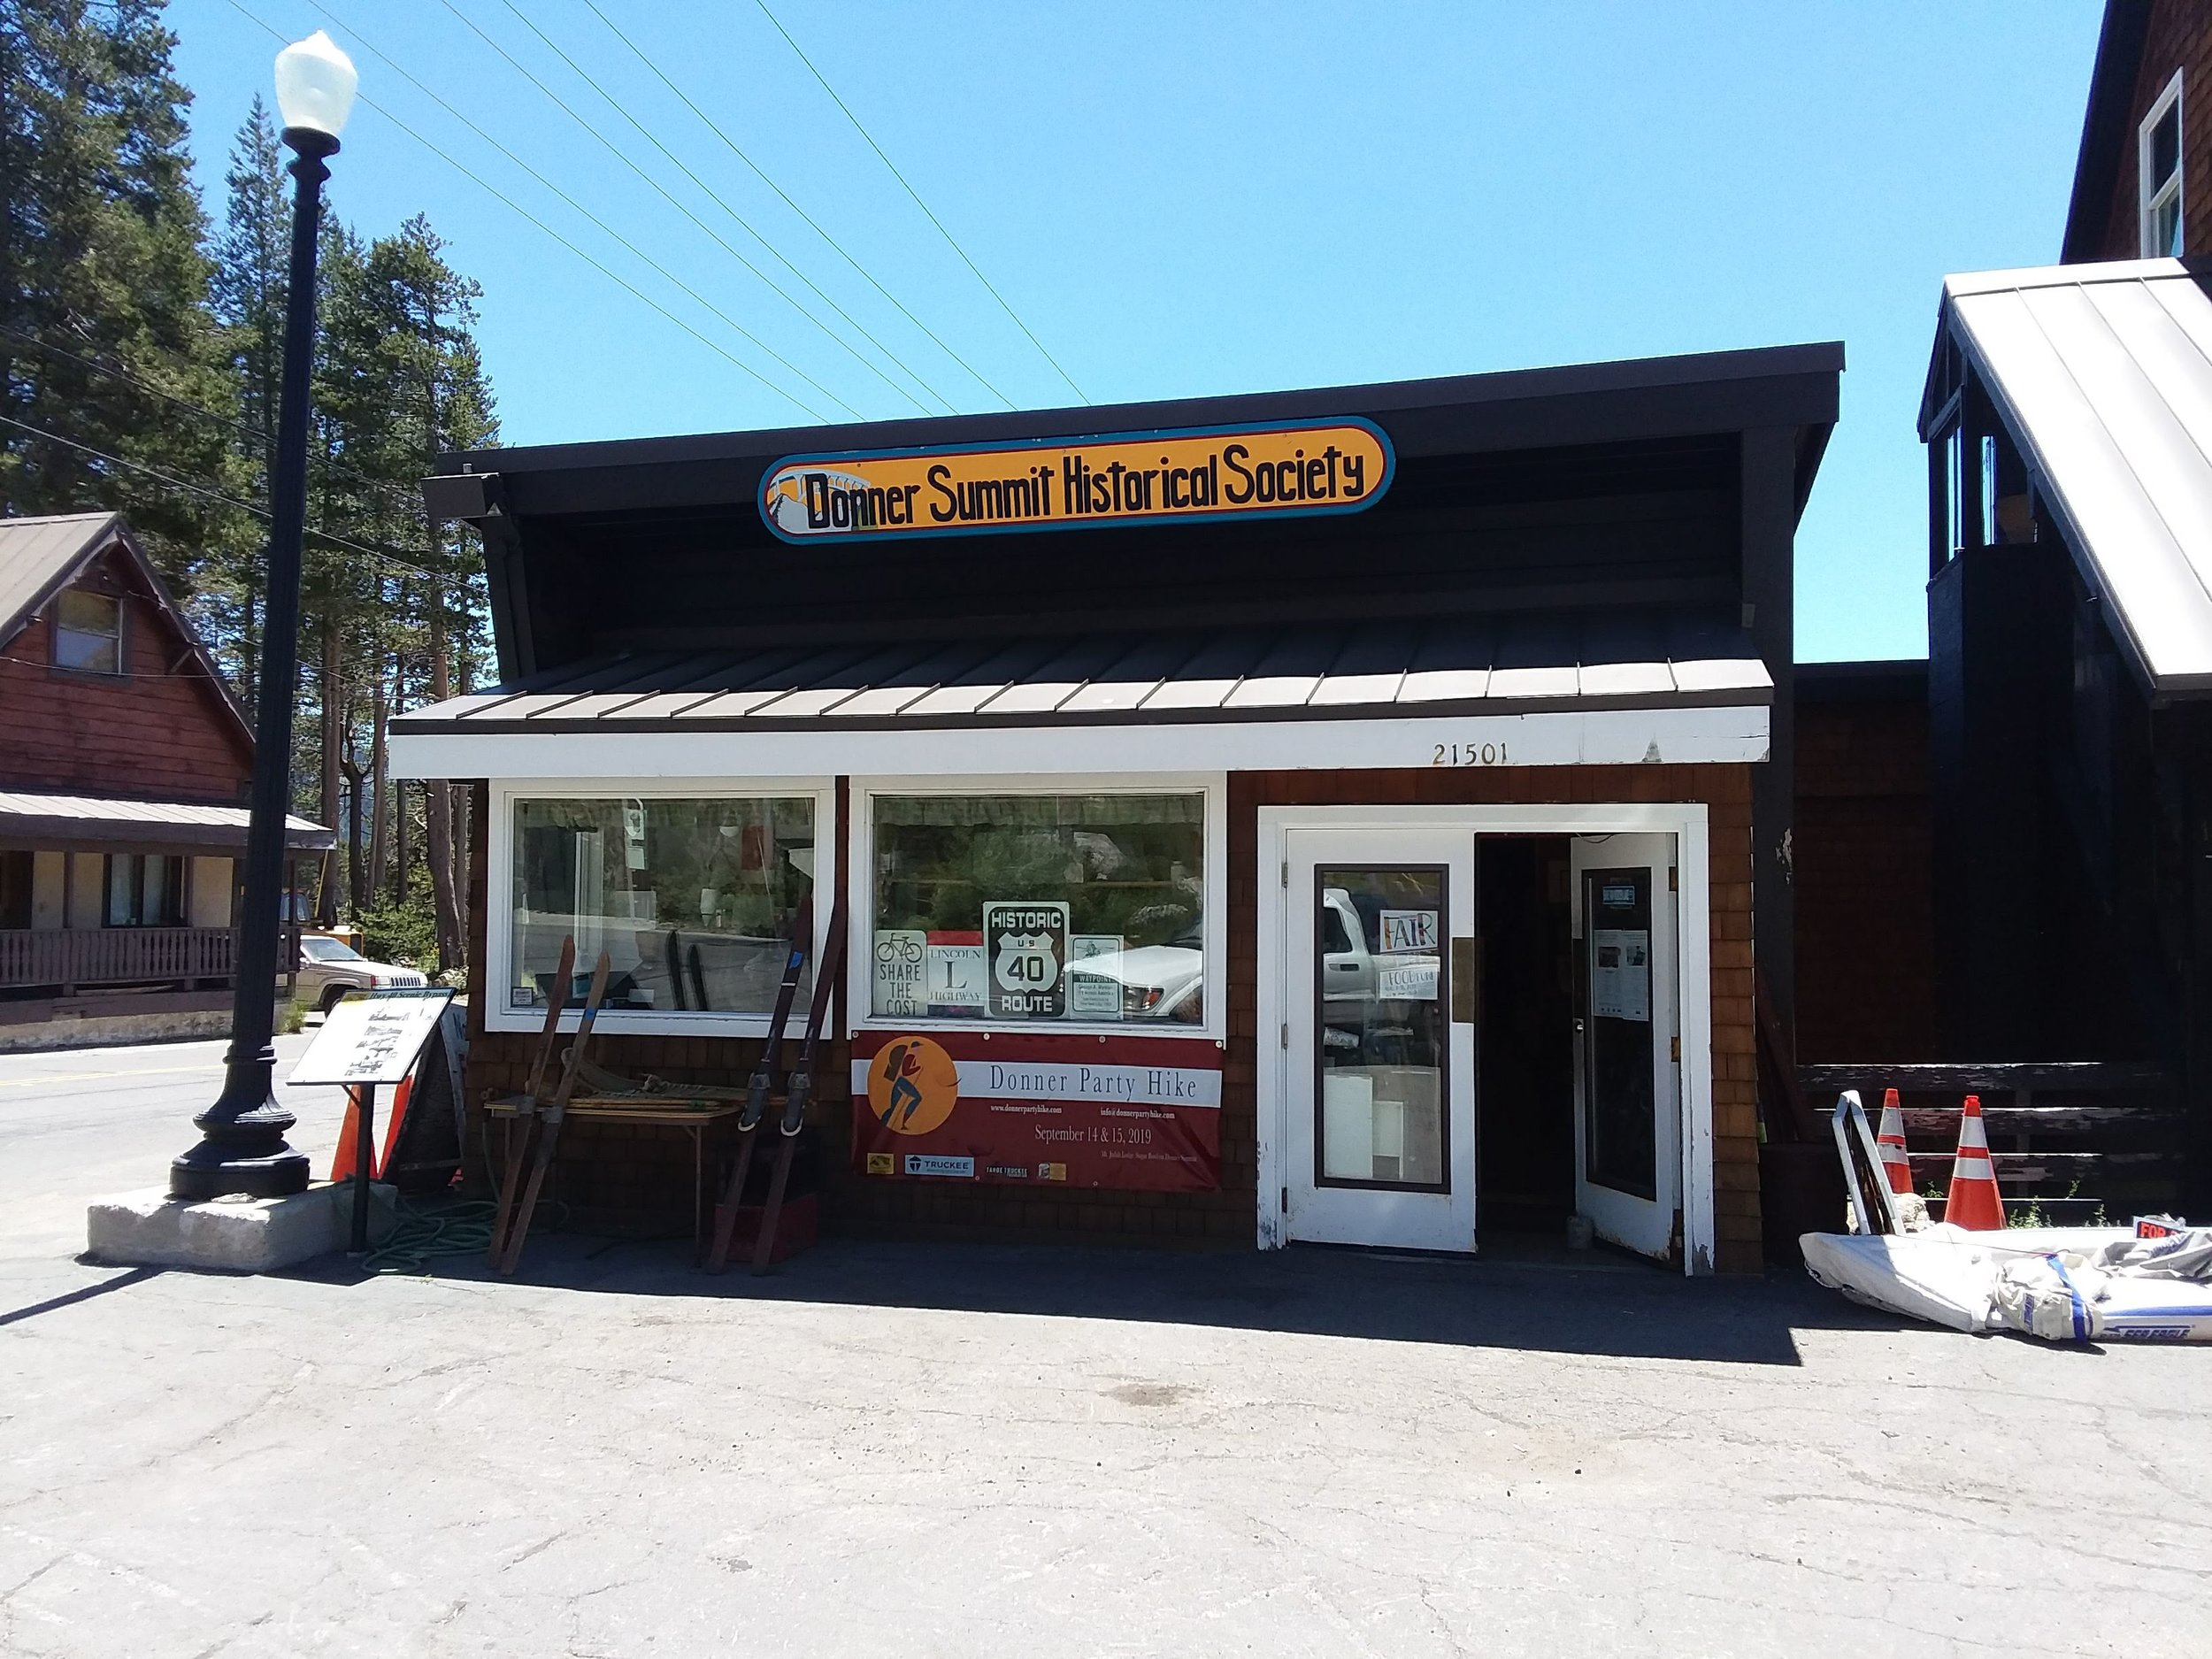 The Museum at the corner of Soda Springs Road and Donner Pass Road.